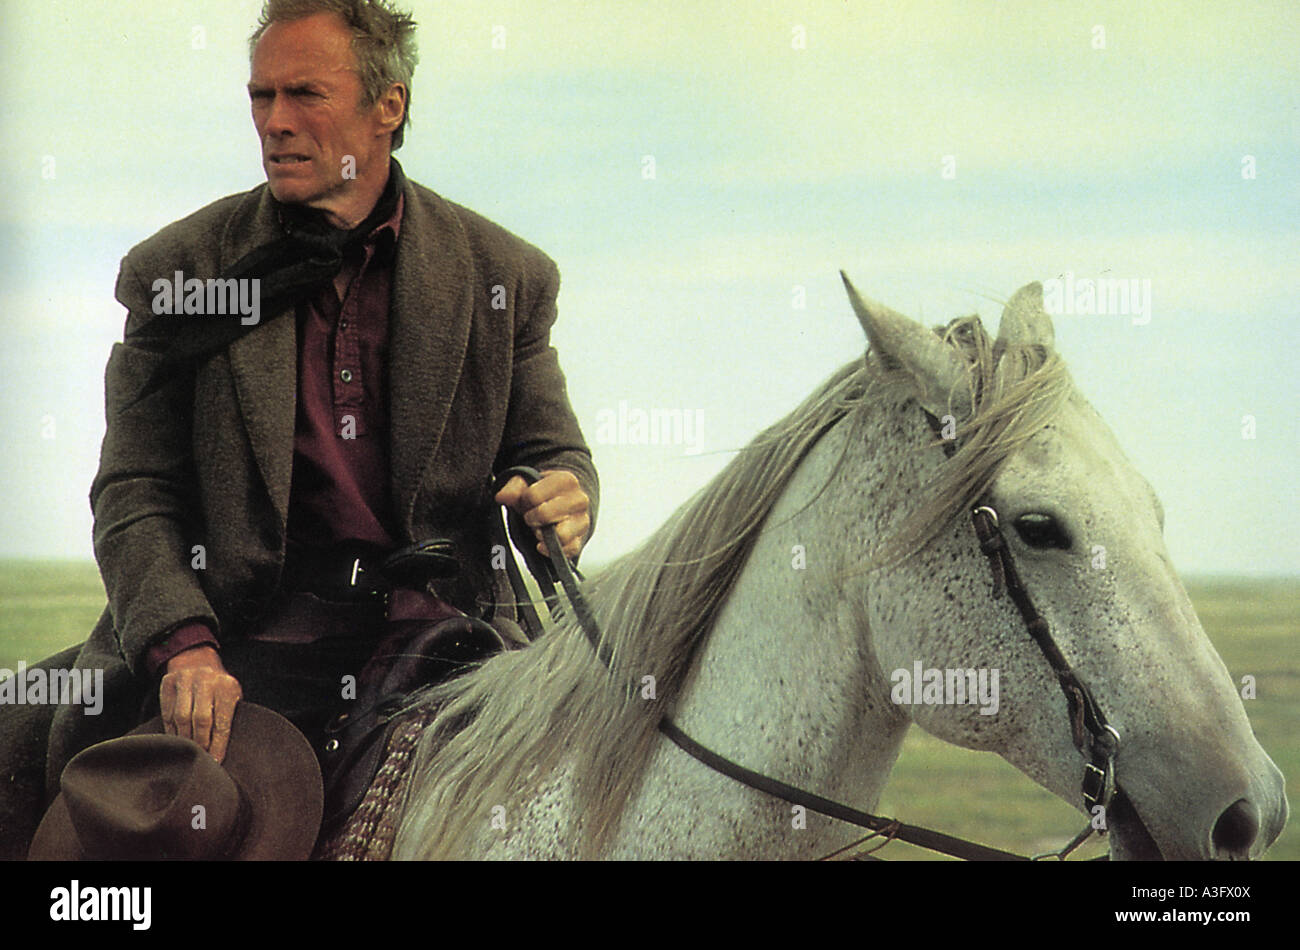 UNFORGIVEN  1992 Warner film with Clint Eastwood as William Munny - Stock Image